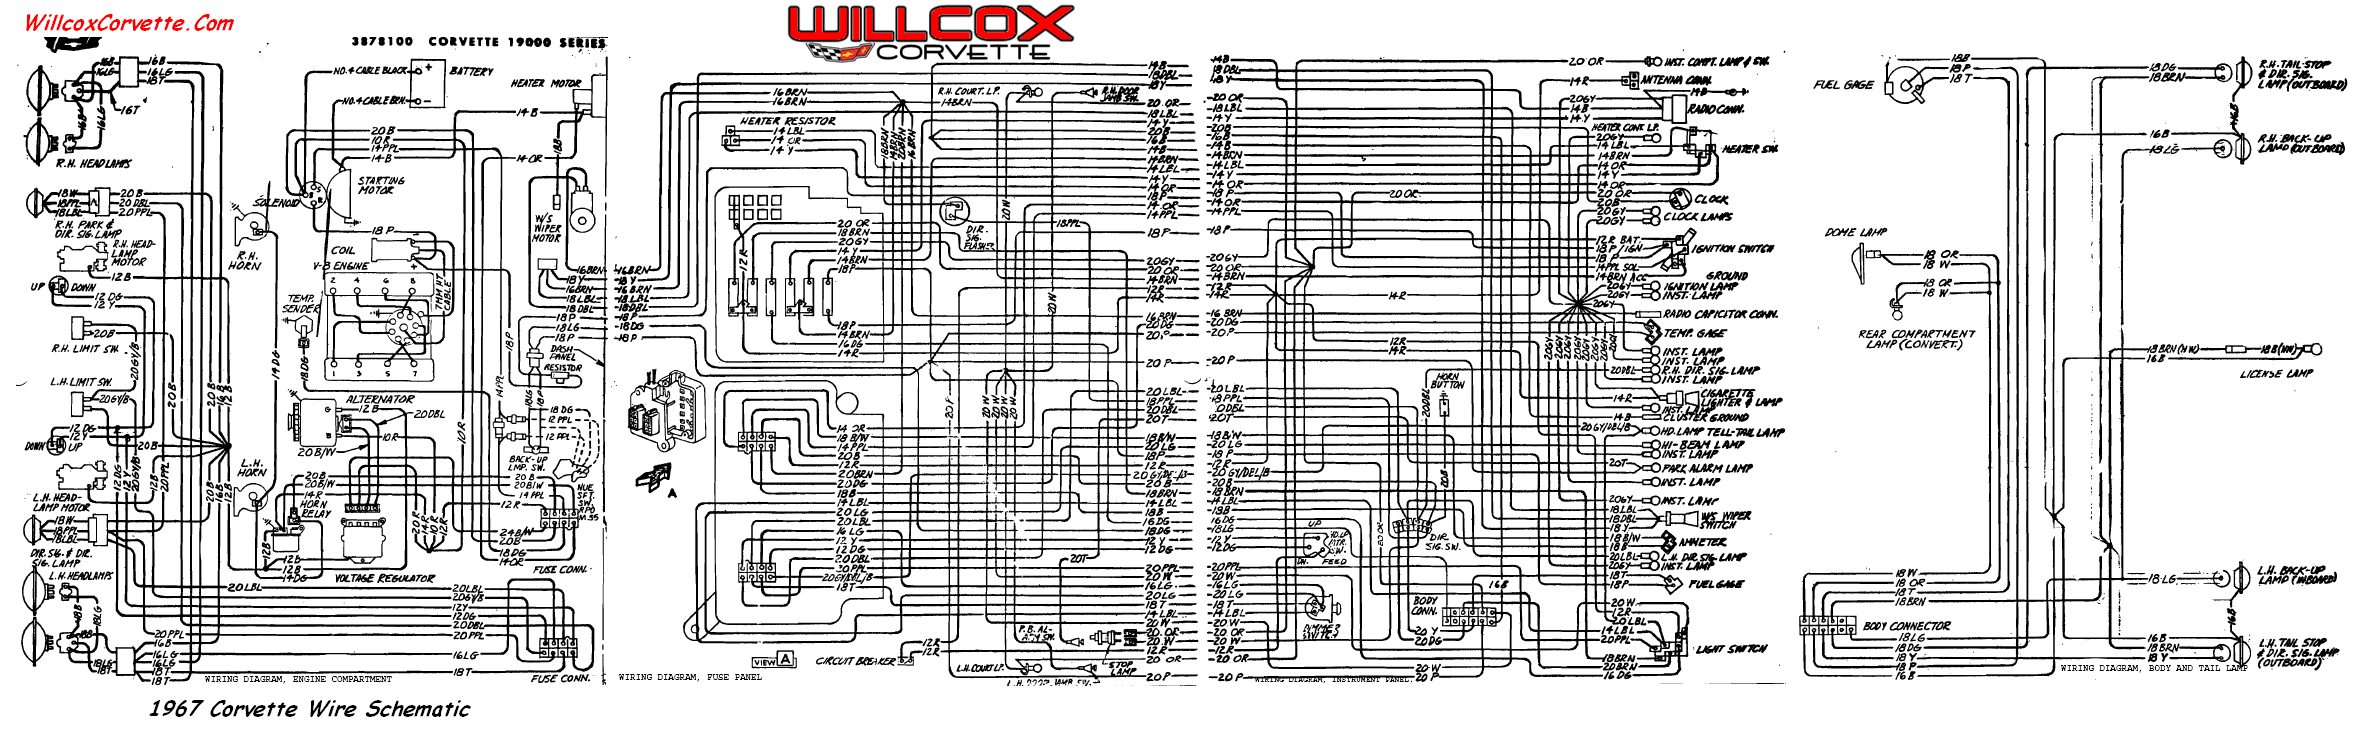 67 wire schematic for tracing wires 1975 corvette wiring diagram 1968 corvette dash wiring diagram 75 Corvette Engine Wiring at gsmx.co